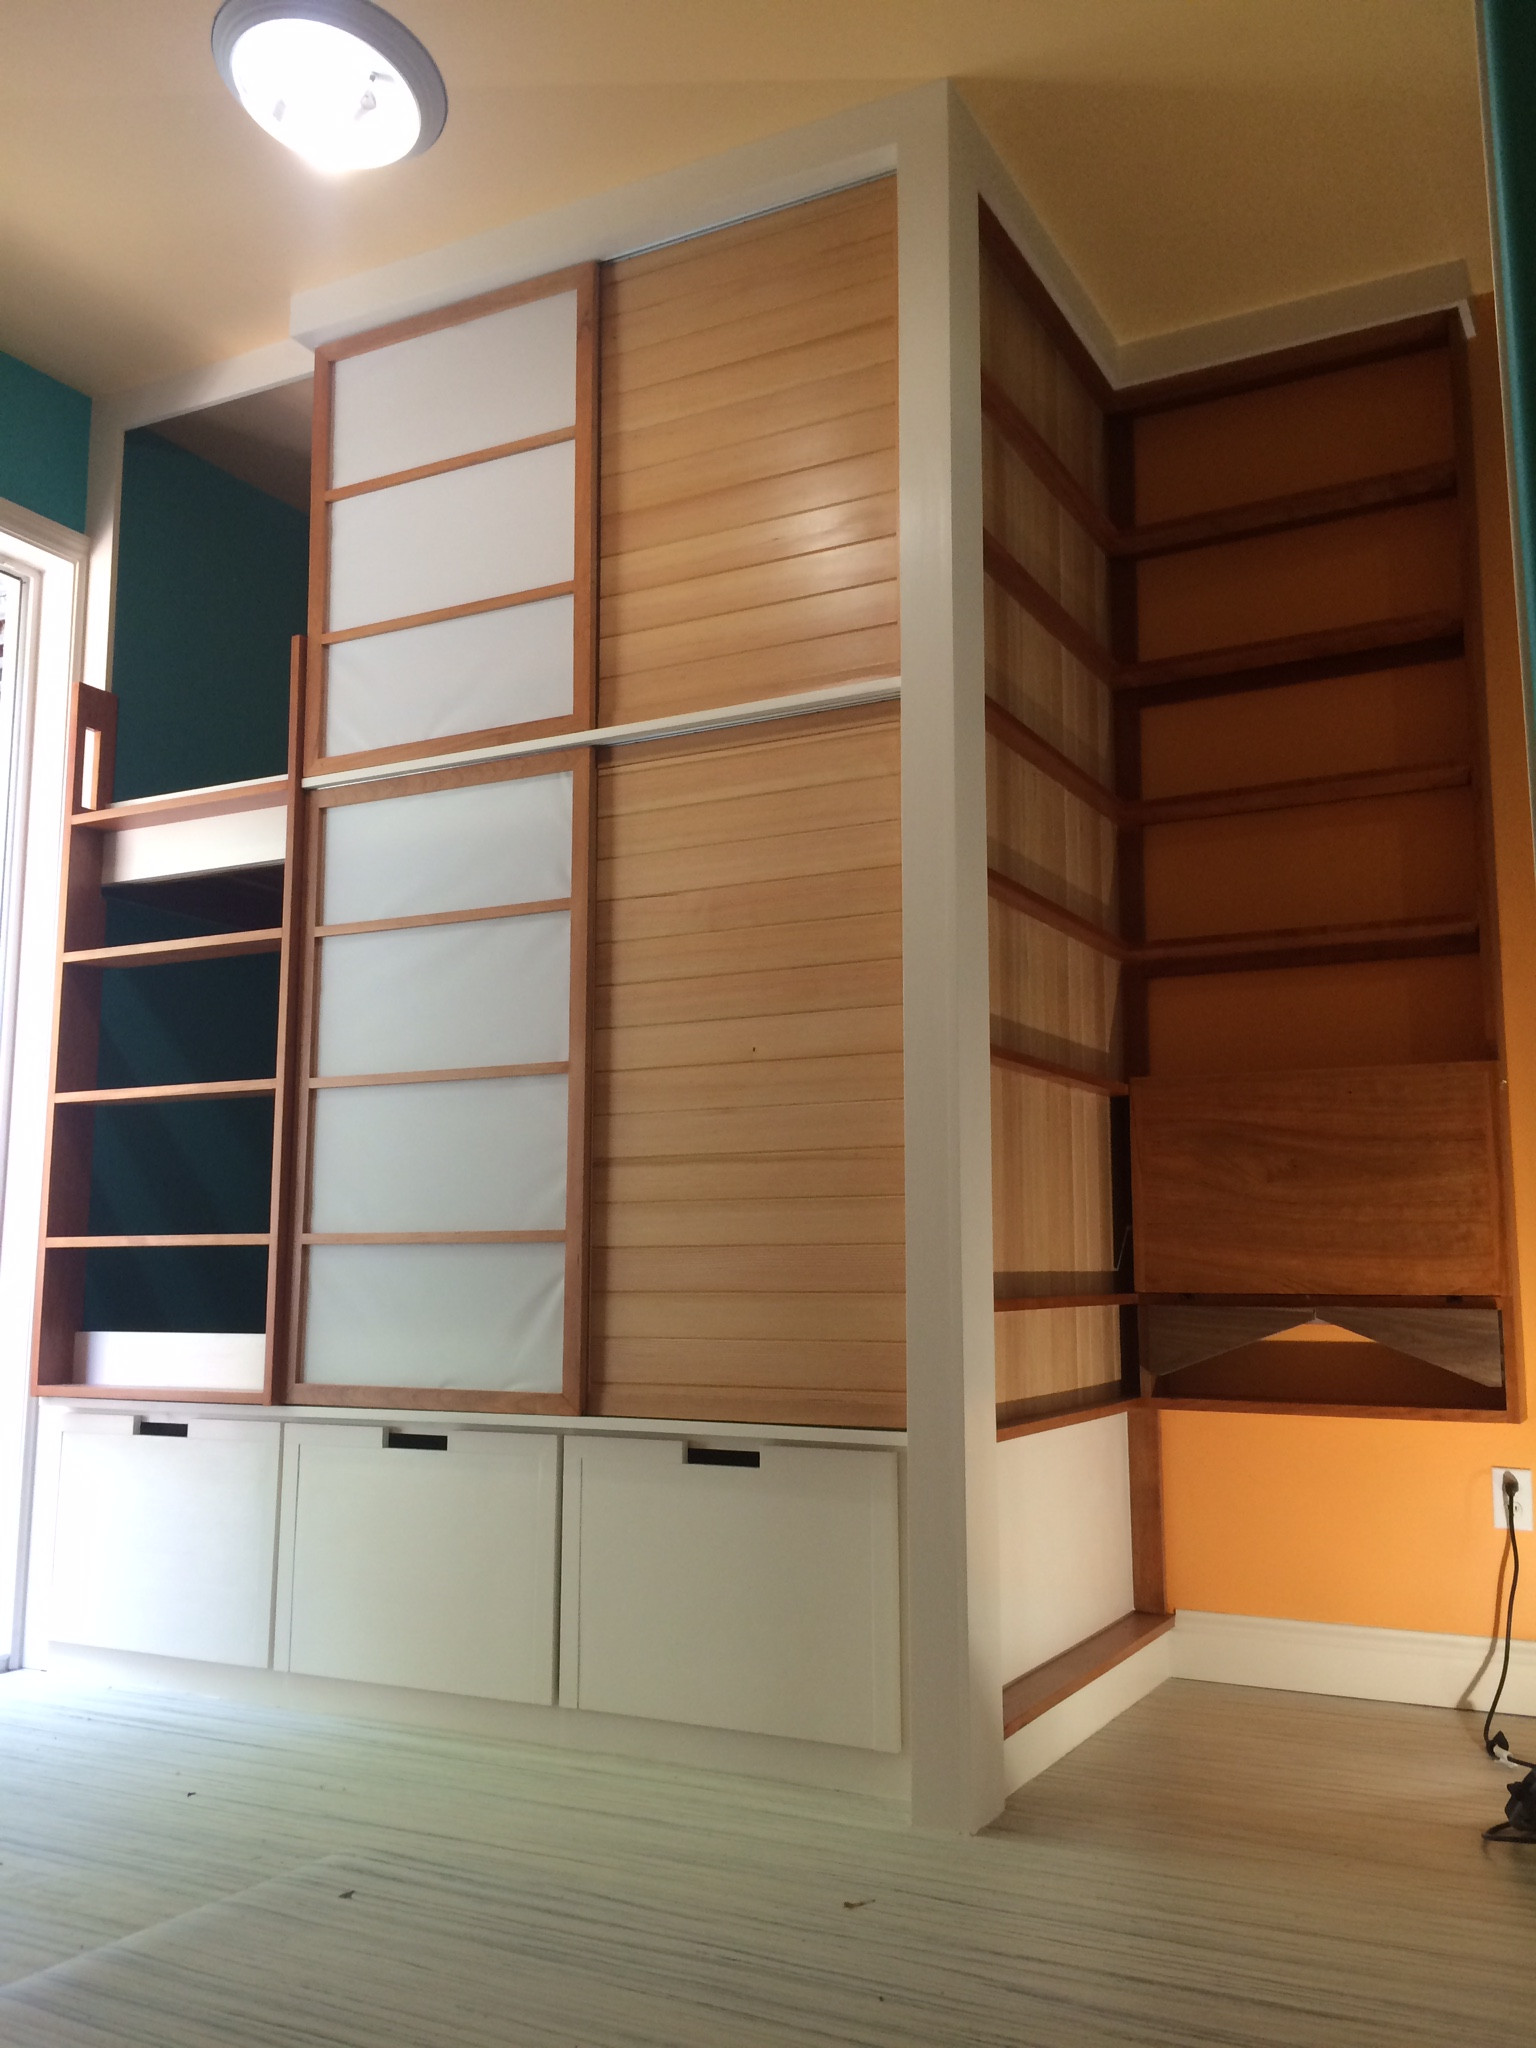 Cabinetry Design and Construction